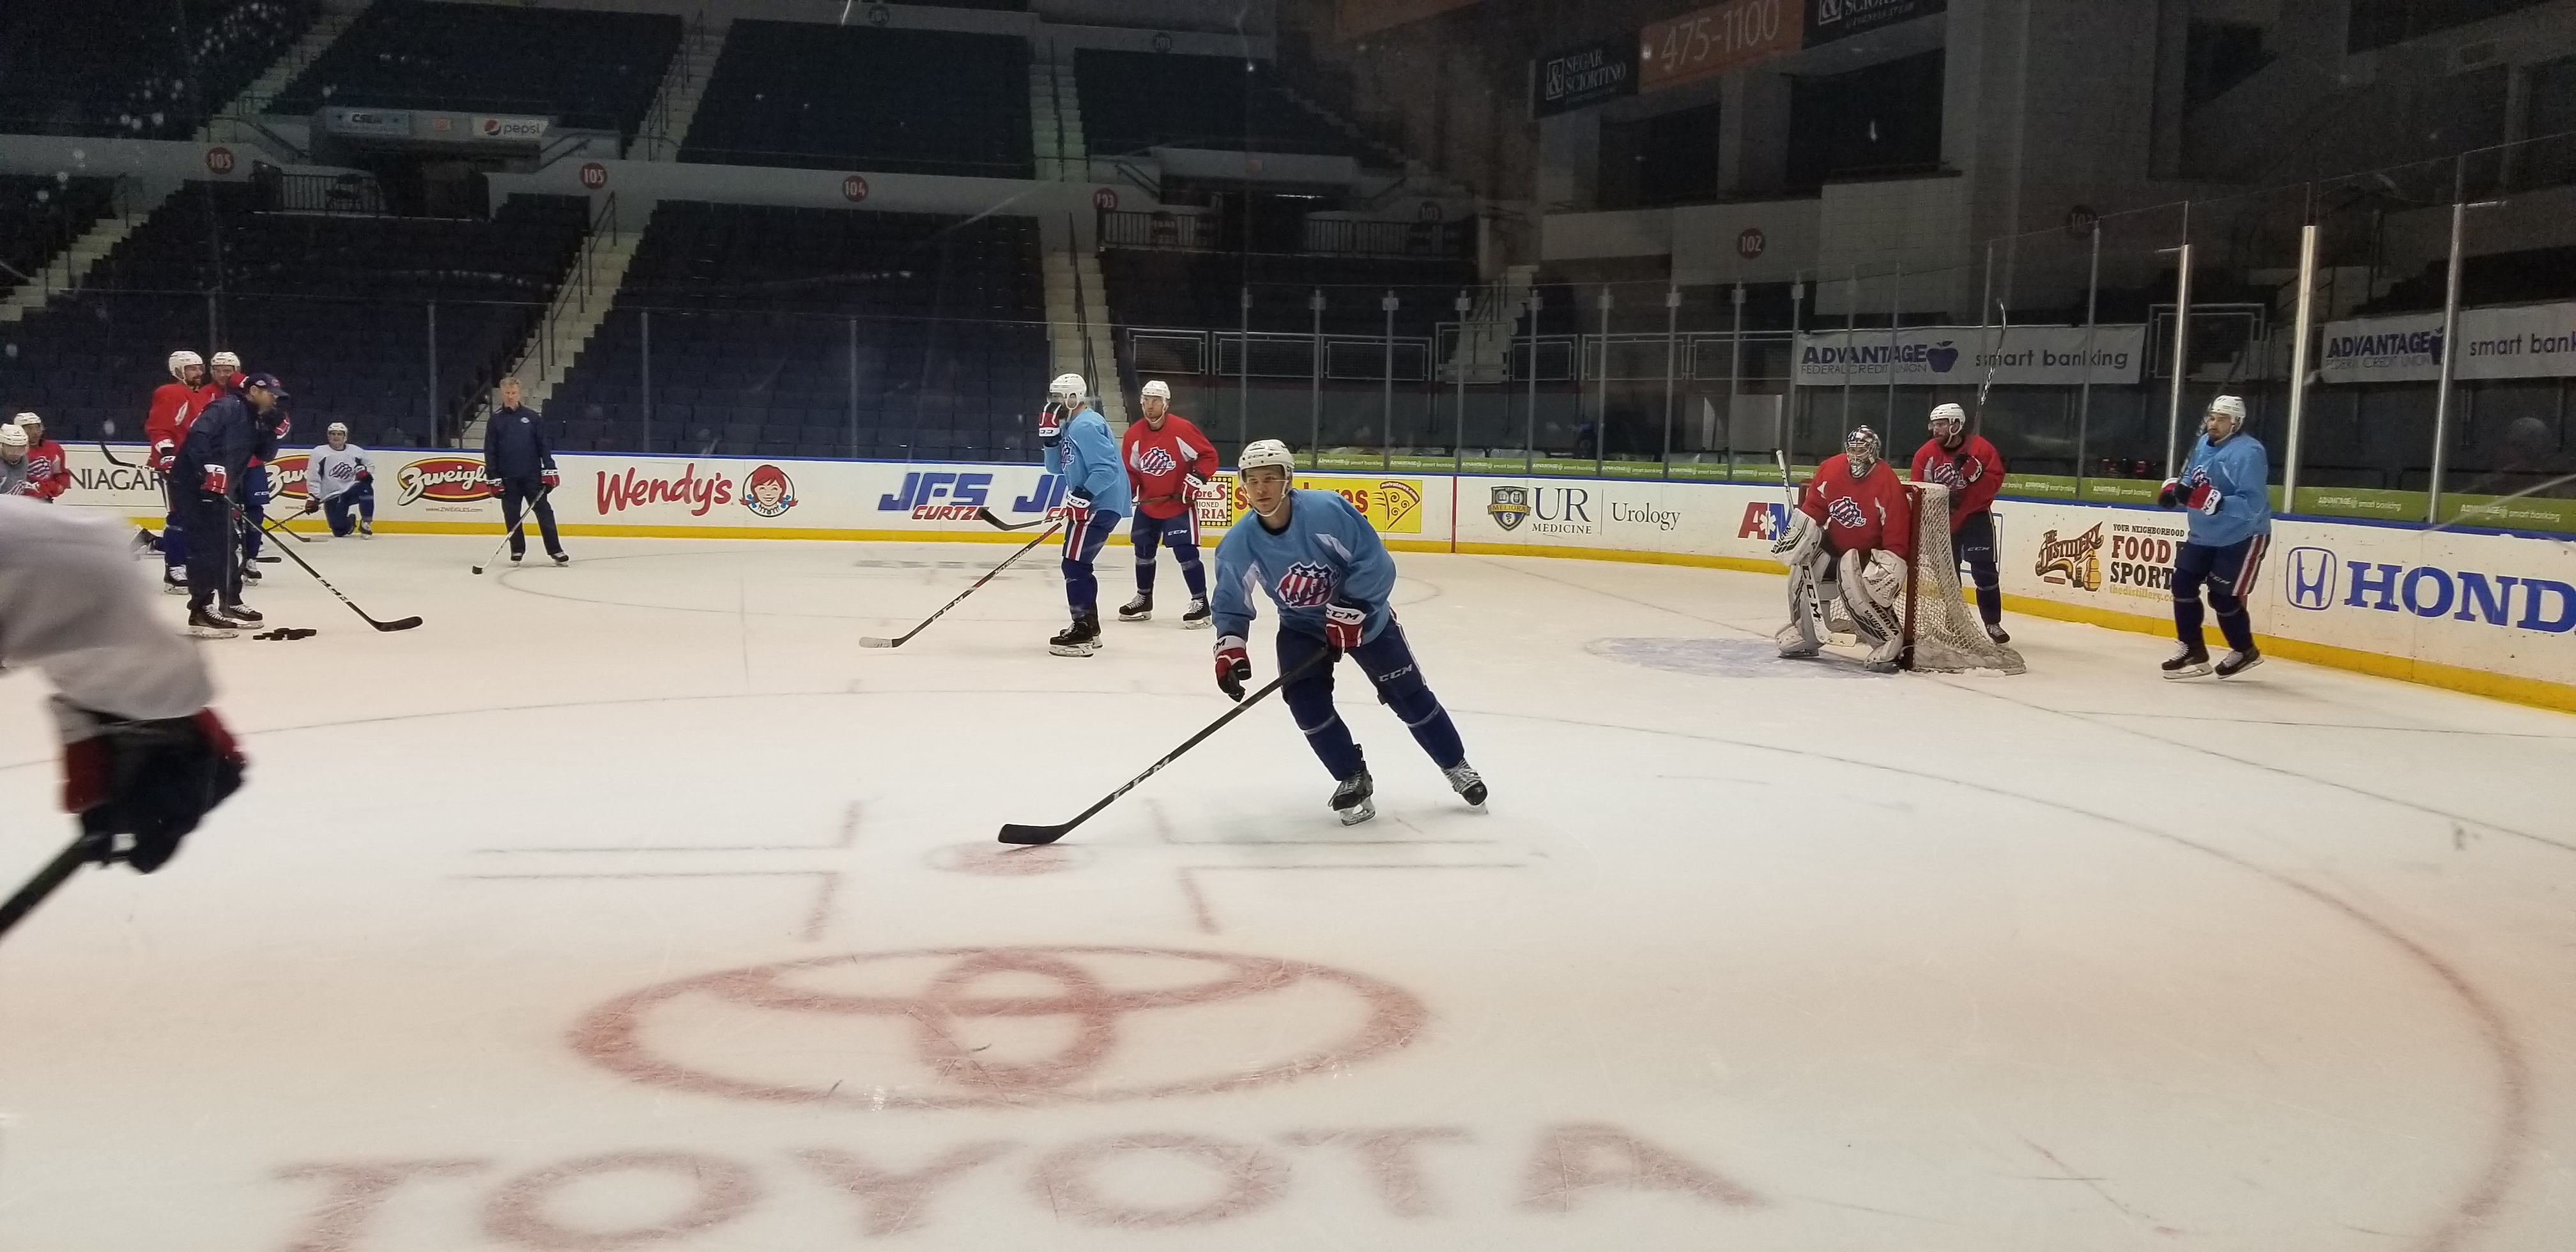 Criscuolo Returning, Defensive Moves, and Building the Gap